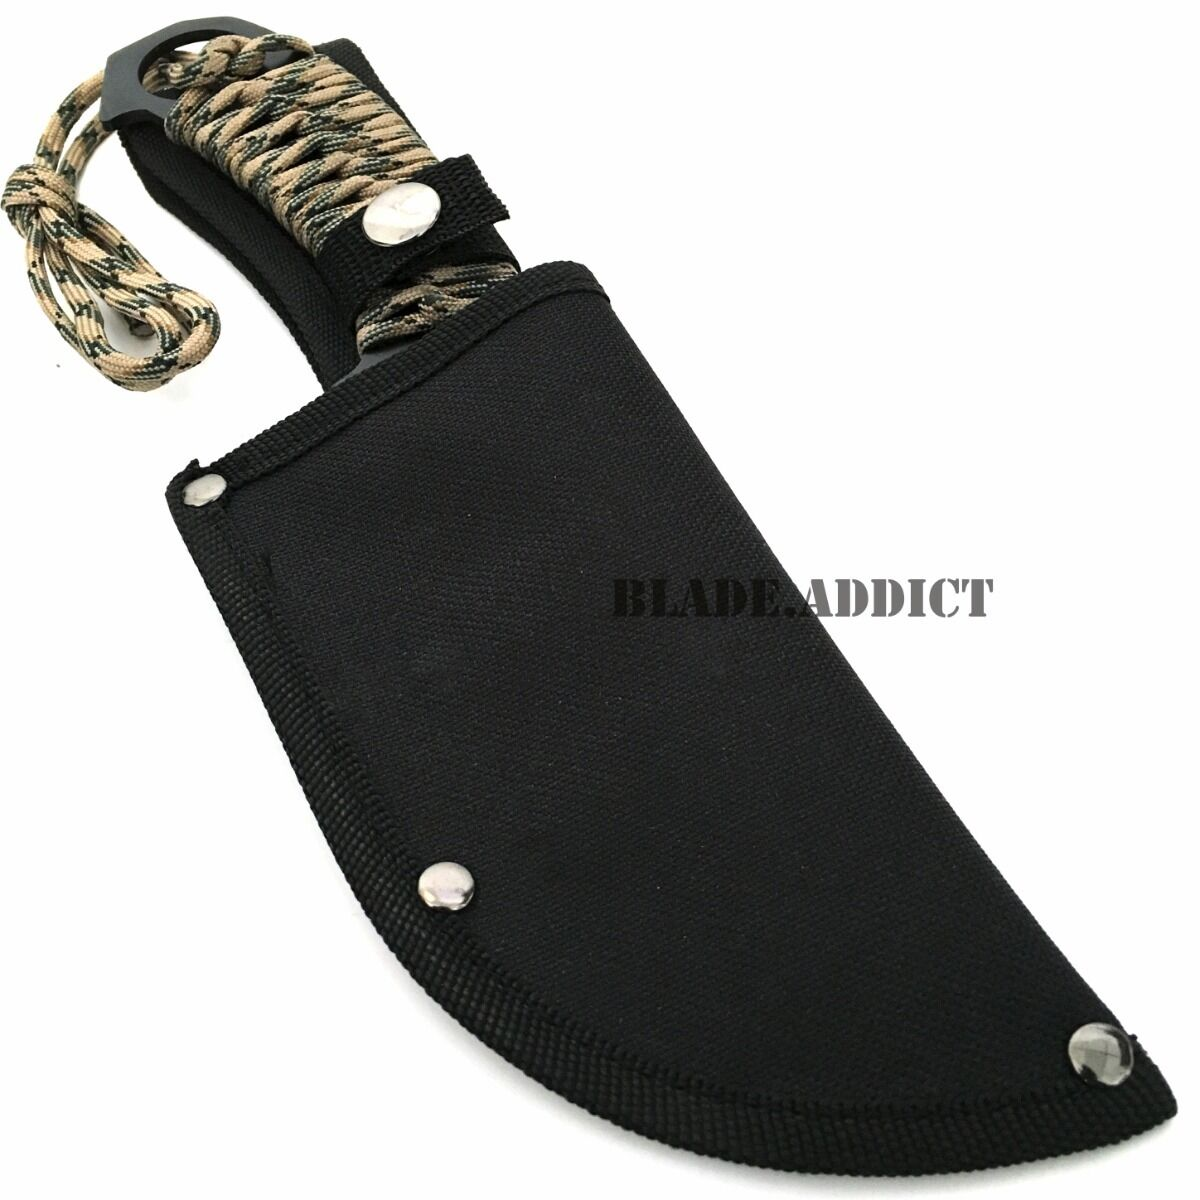 """10"""" TACTICAL Army SURVIVAL Rambo Hunting FIXED BLADE KNIFE Bowie w/ SHEATH NEW"""